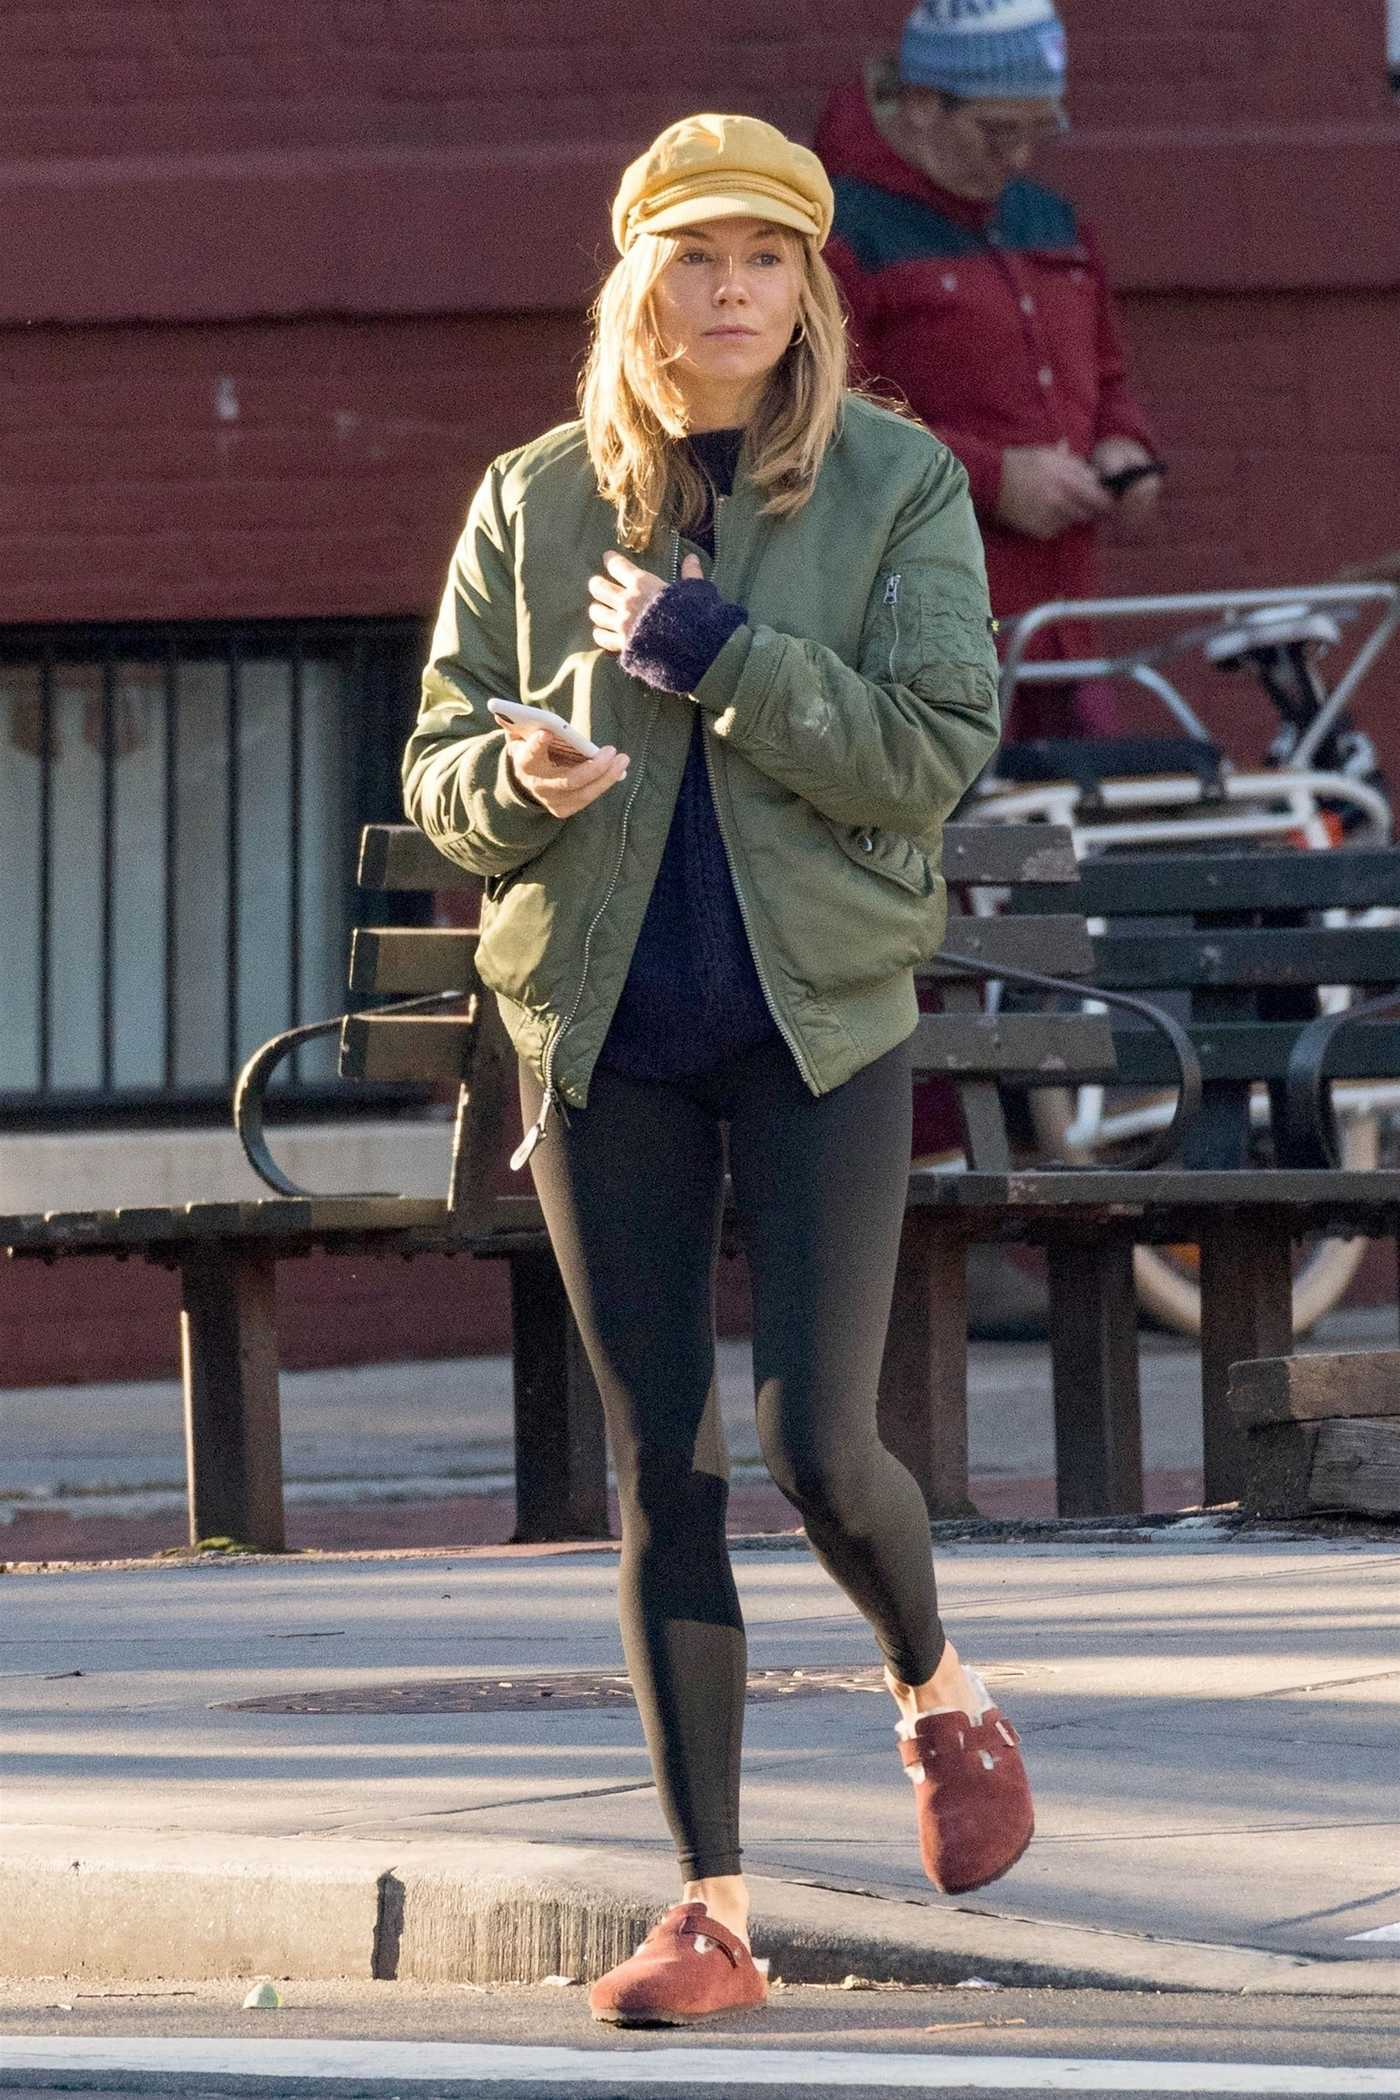 Sienna Miller in a Green Bomber Jacket Was Seen Out in NYC 10/18/2018